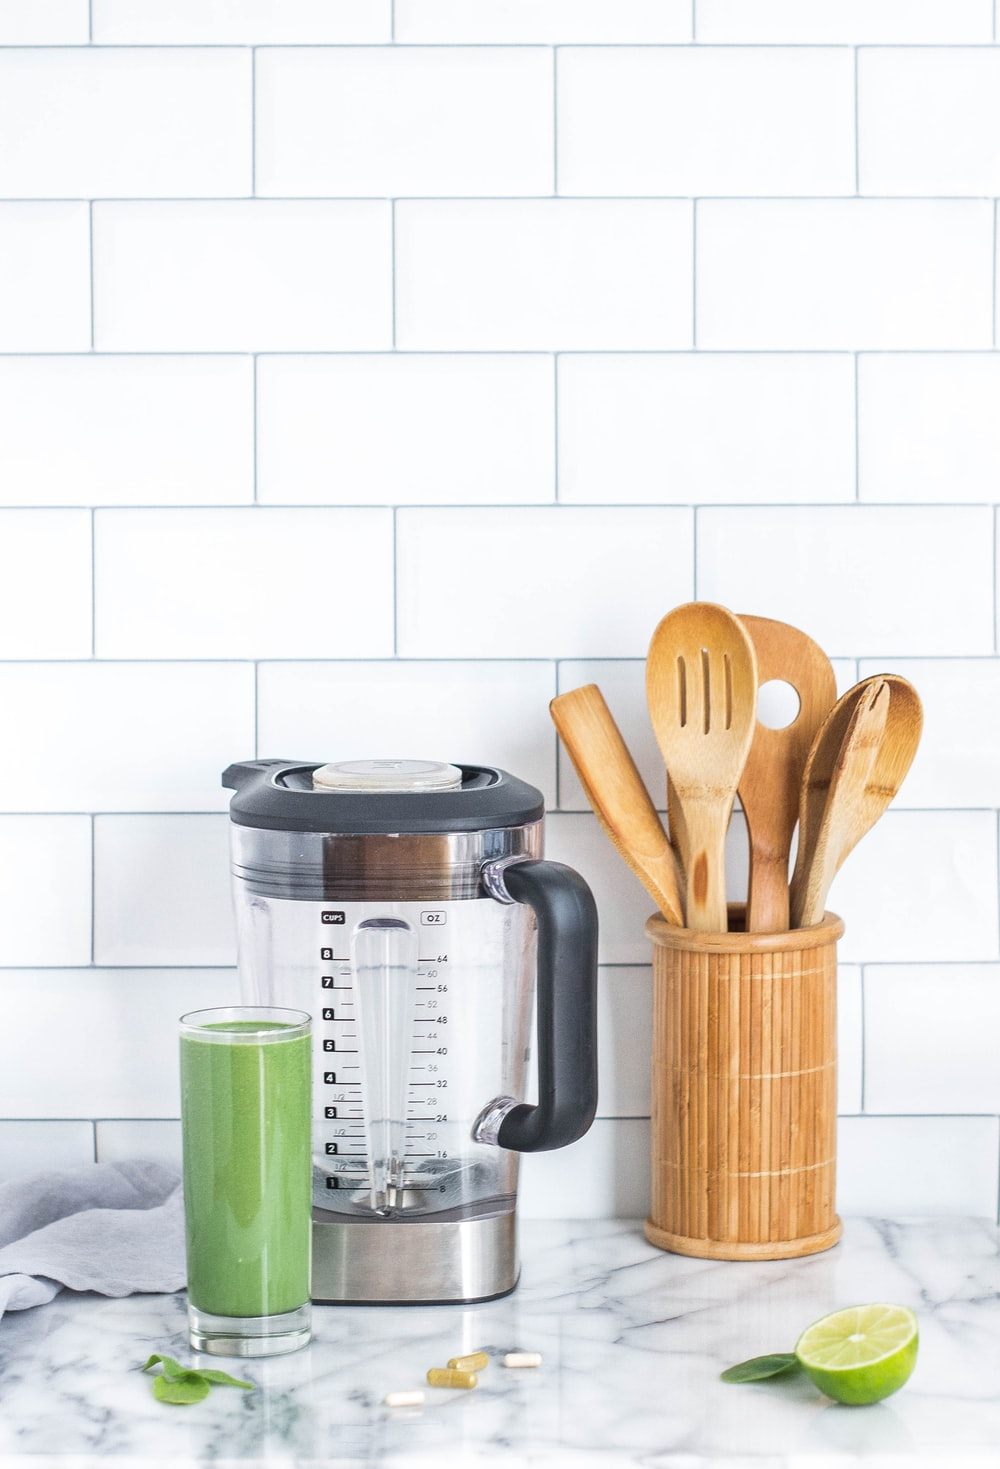 Kitchenware Pictures | Download Free Images on Unsplash